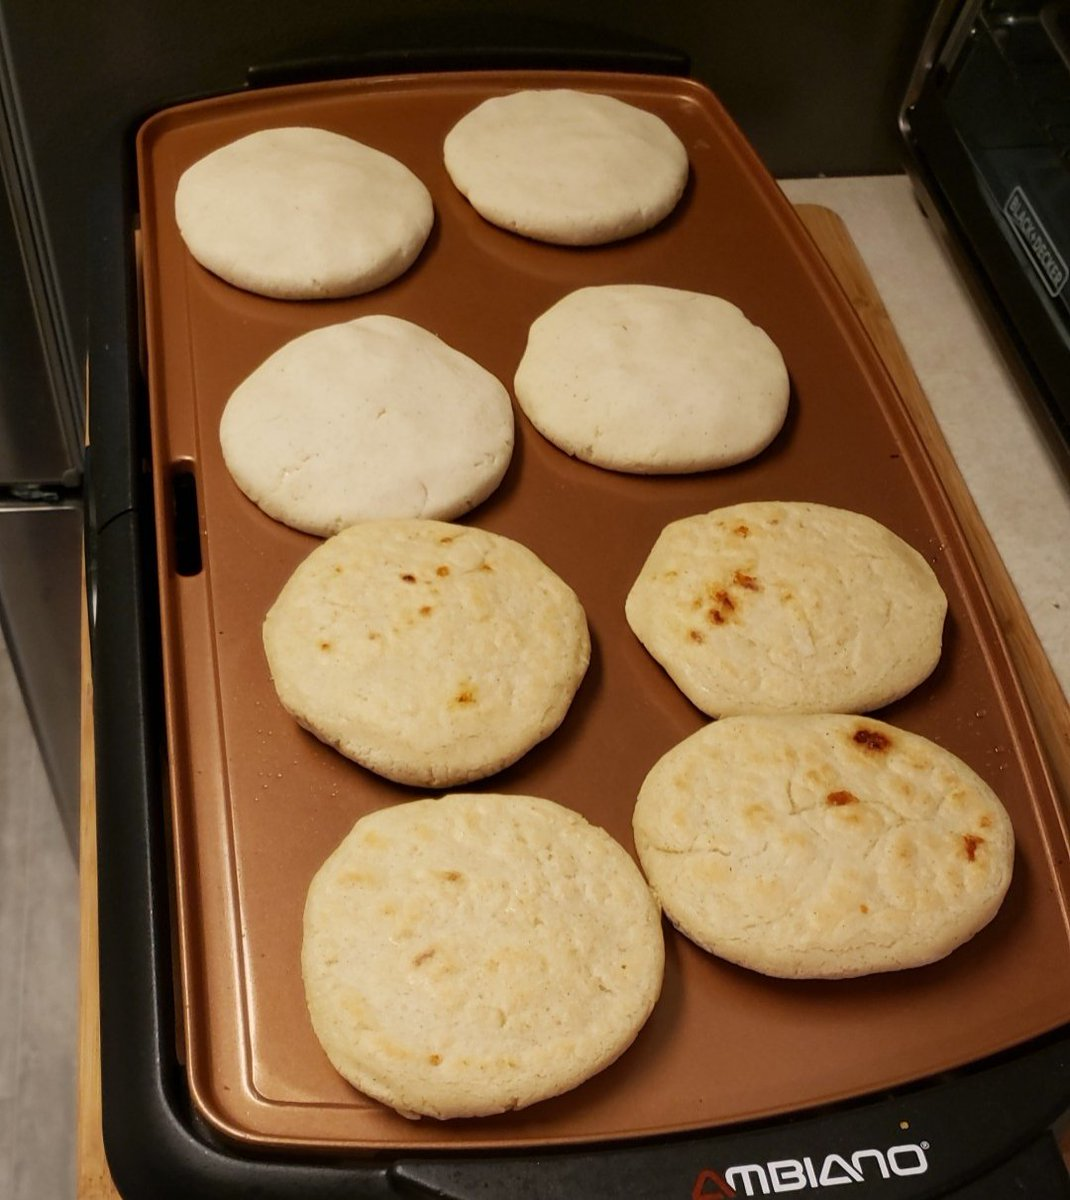 Ms.Ibar's griddle can make 8 pupusas at a time. If she needs to make 32 pupusas, how many times will she have to use the griddle? #SpiritWeek #MathMonday #ChangingLives @BucknellElempic.twitter.com/hnQhu855vK